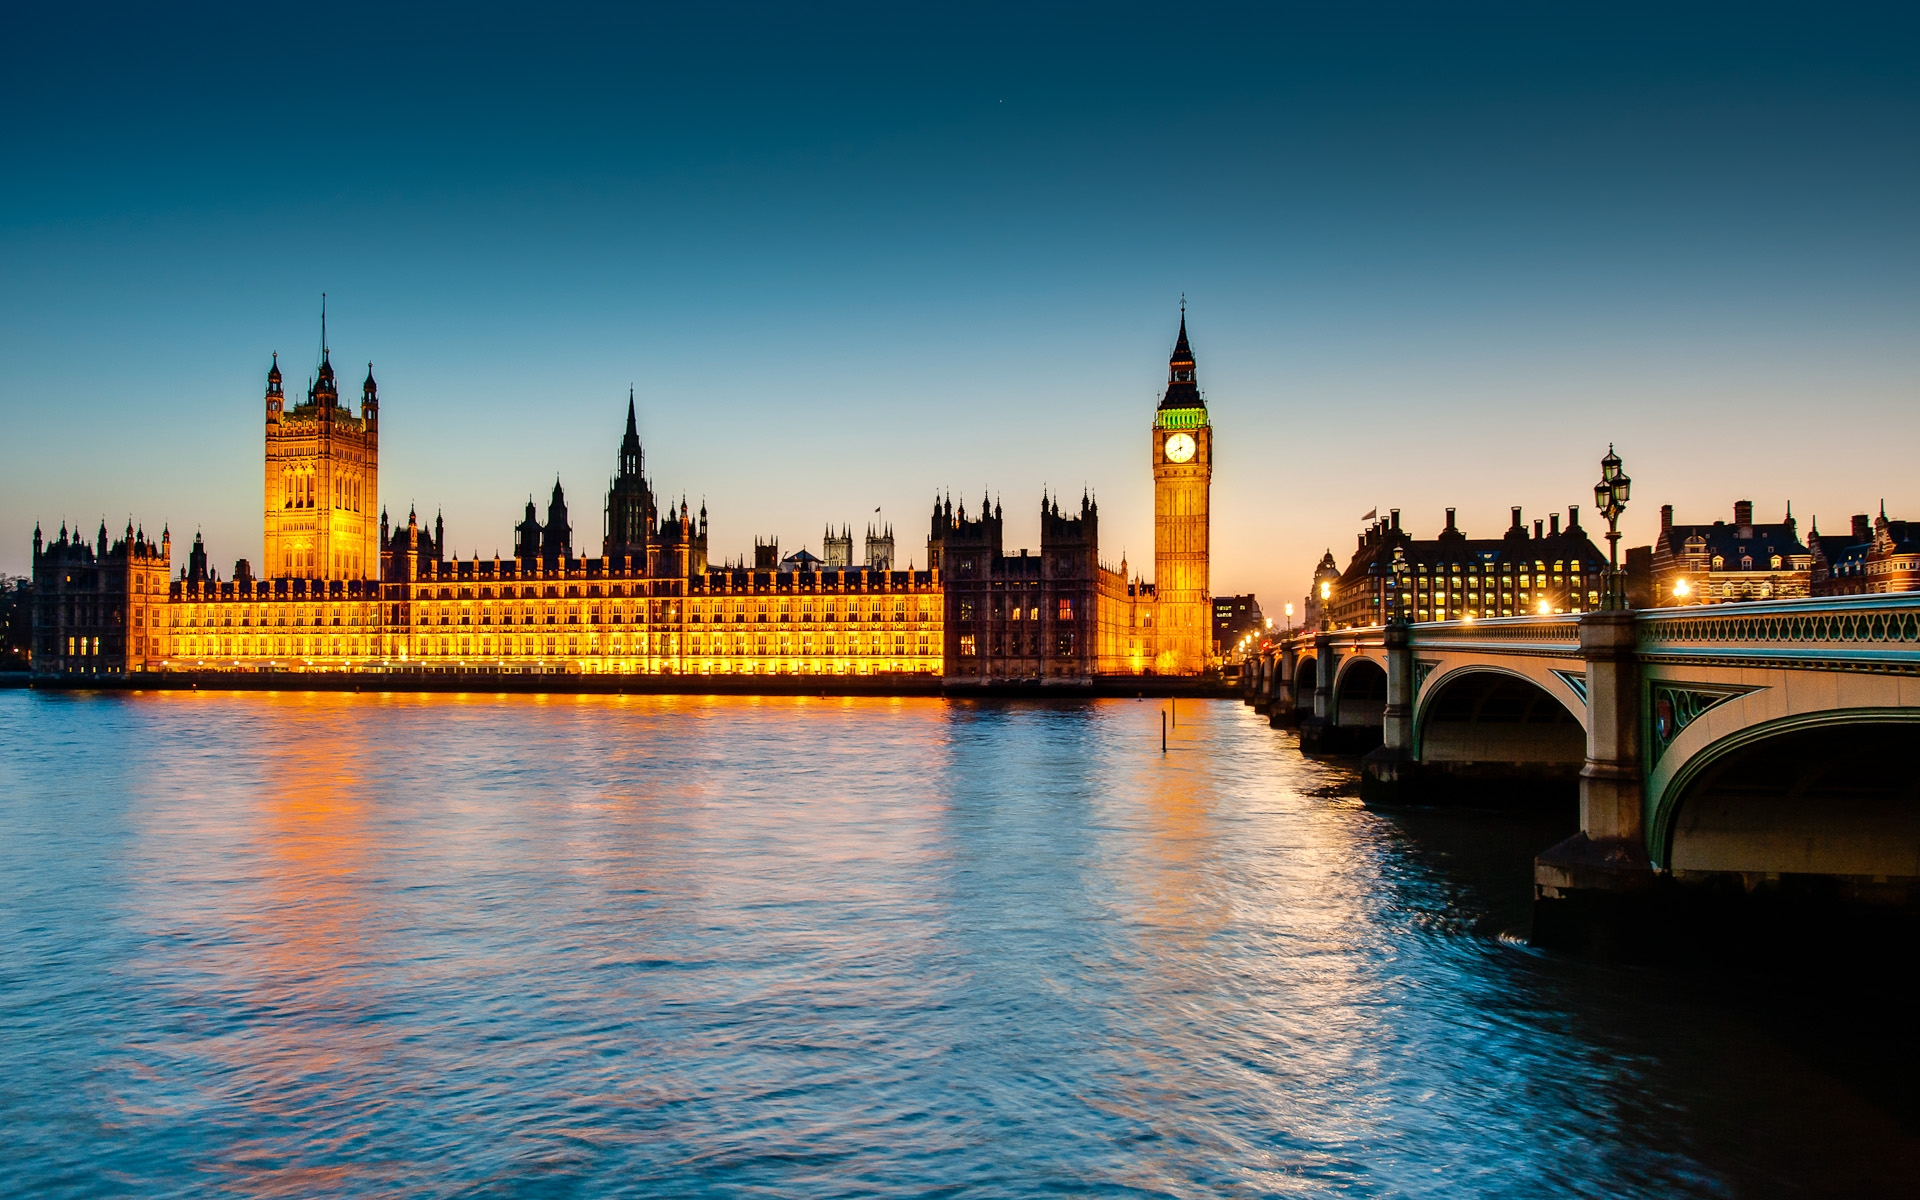 houses of parliament and Westminster bridge at dusk night